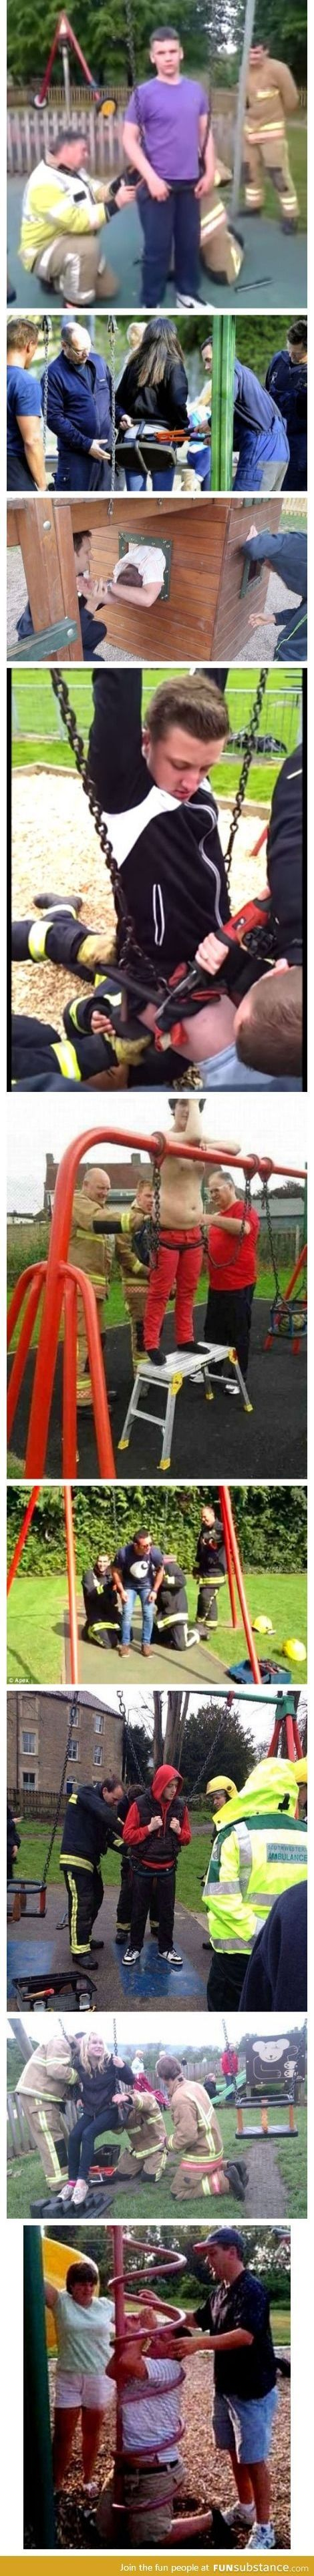 Why adults should be banned from using children's playground equipment . . .